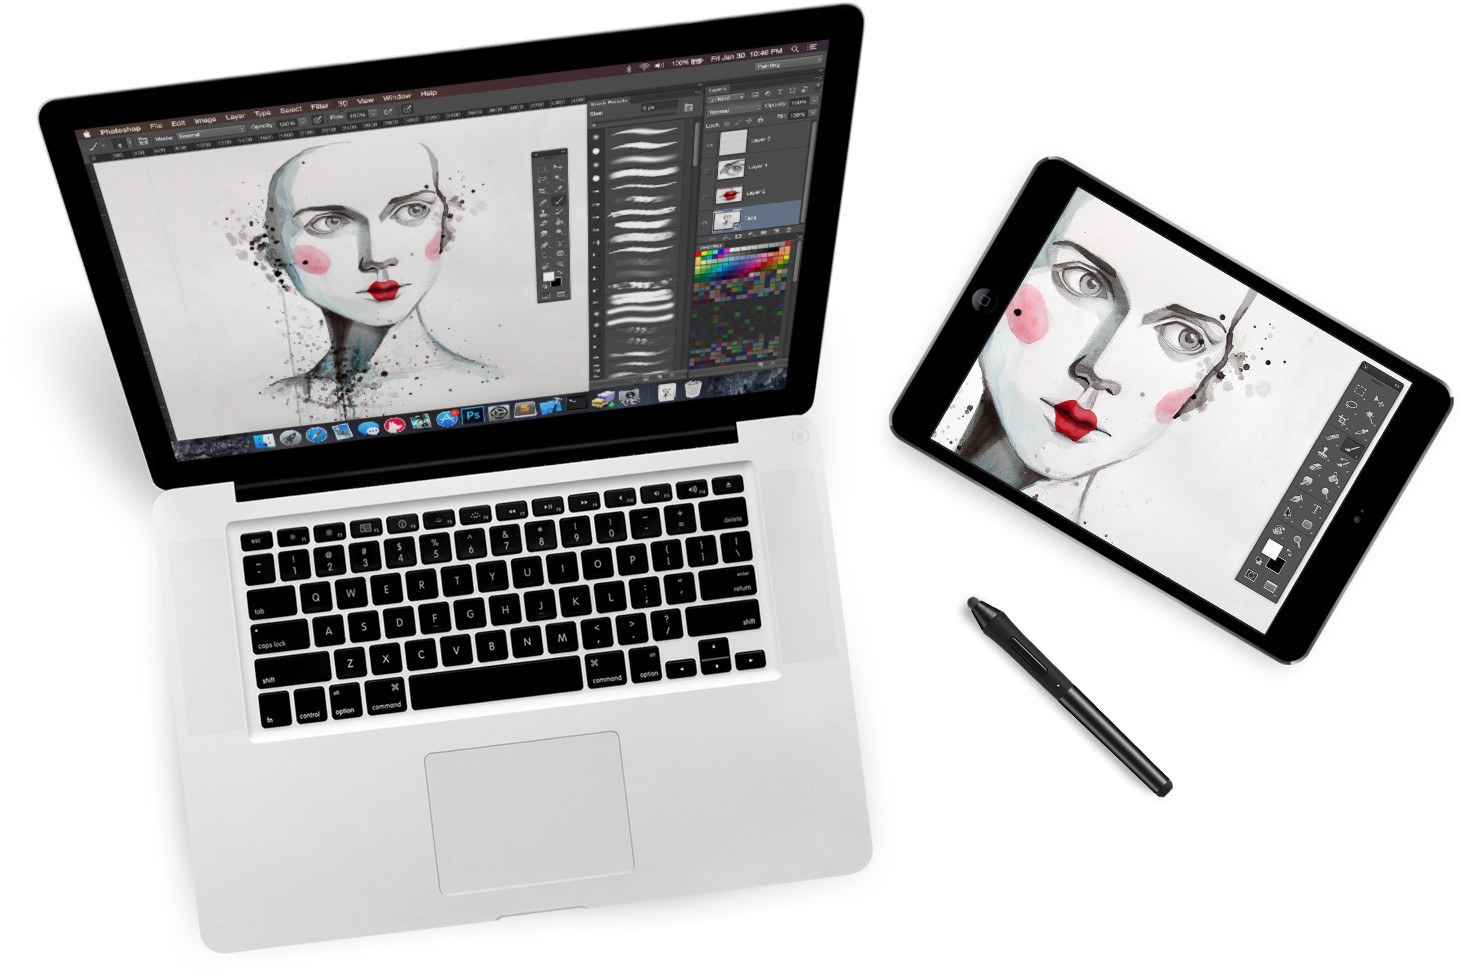 Astropad: Use Your iPad As A Professional Graphics Tablet, Astropad: use your iPad as a drawing tablet for your Mac. Image Courtesy of Astropad